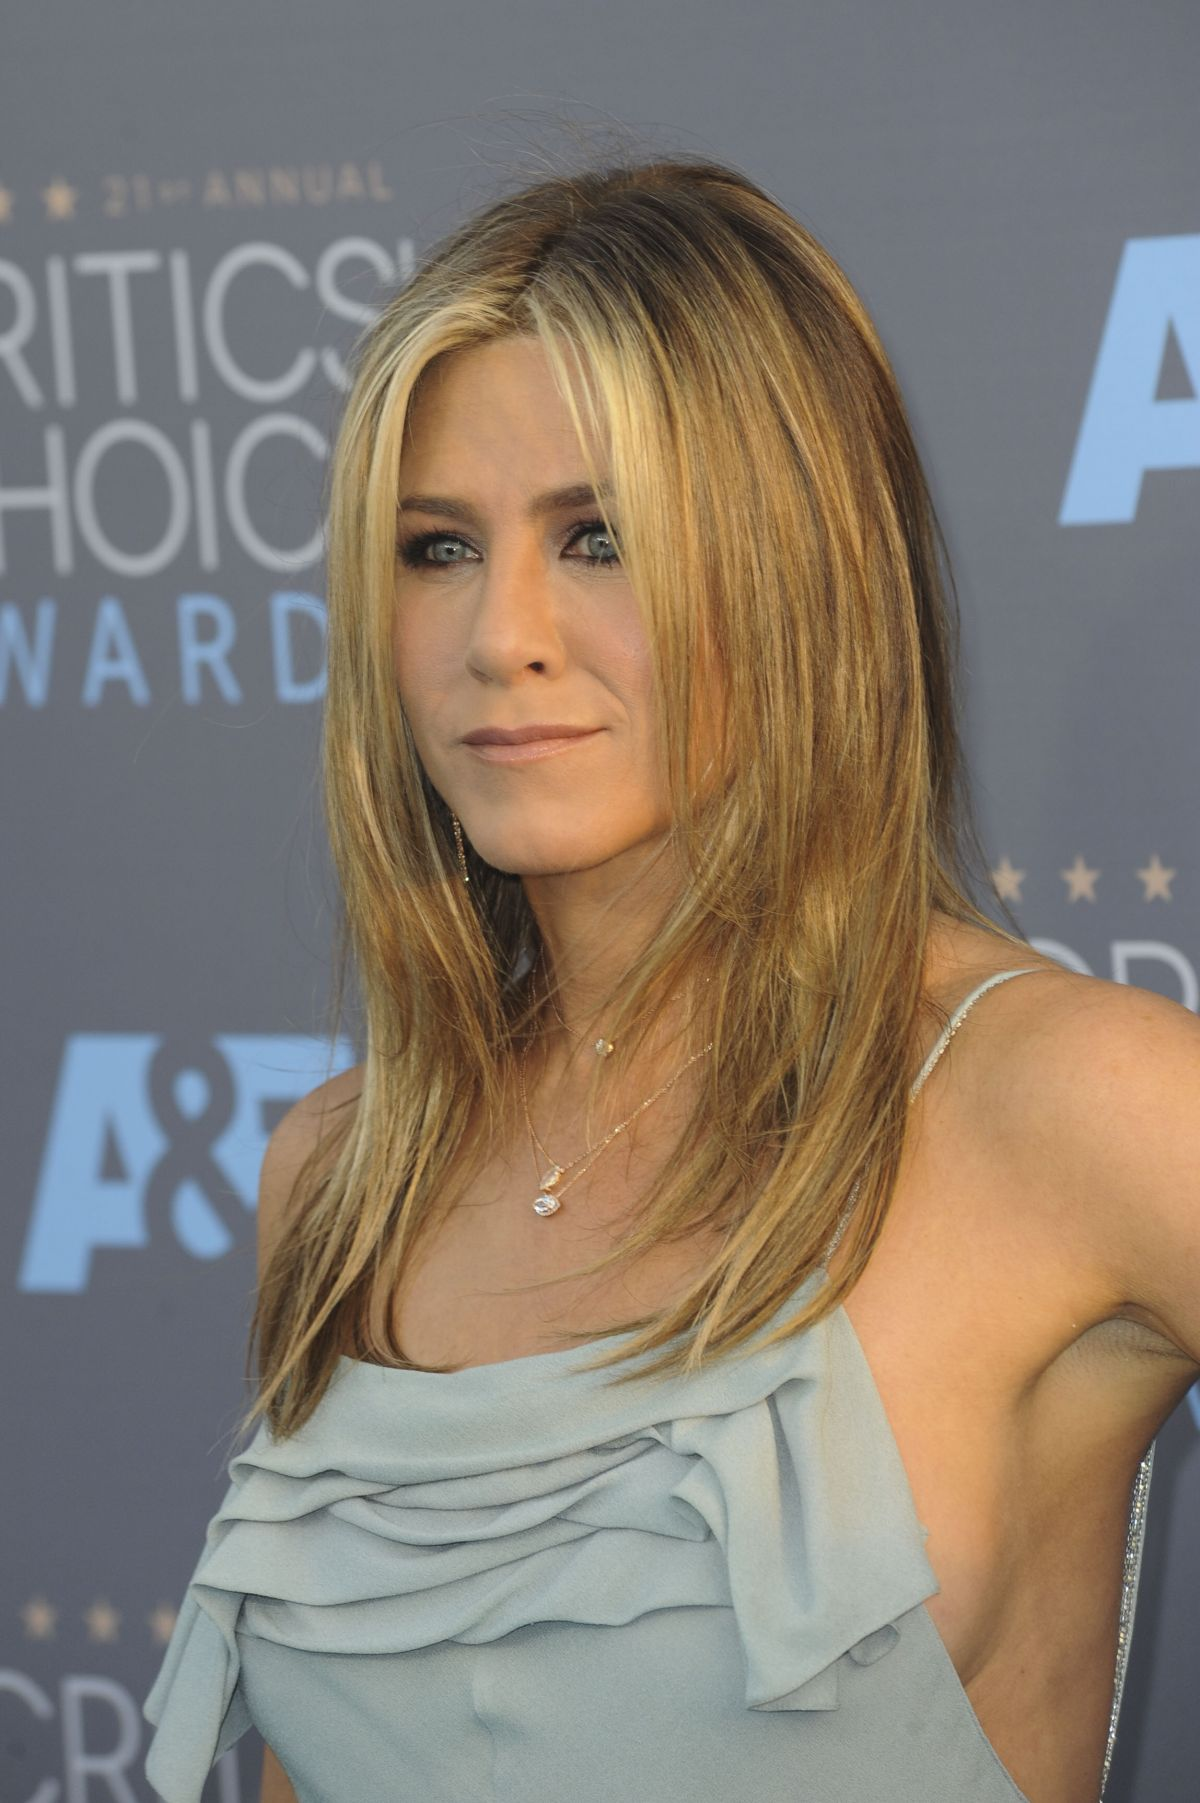 JENNIFER ANISTON at Critics's Choice Awards 2016 in Santa Monica 01 ... Jennifer Aniston